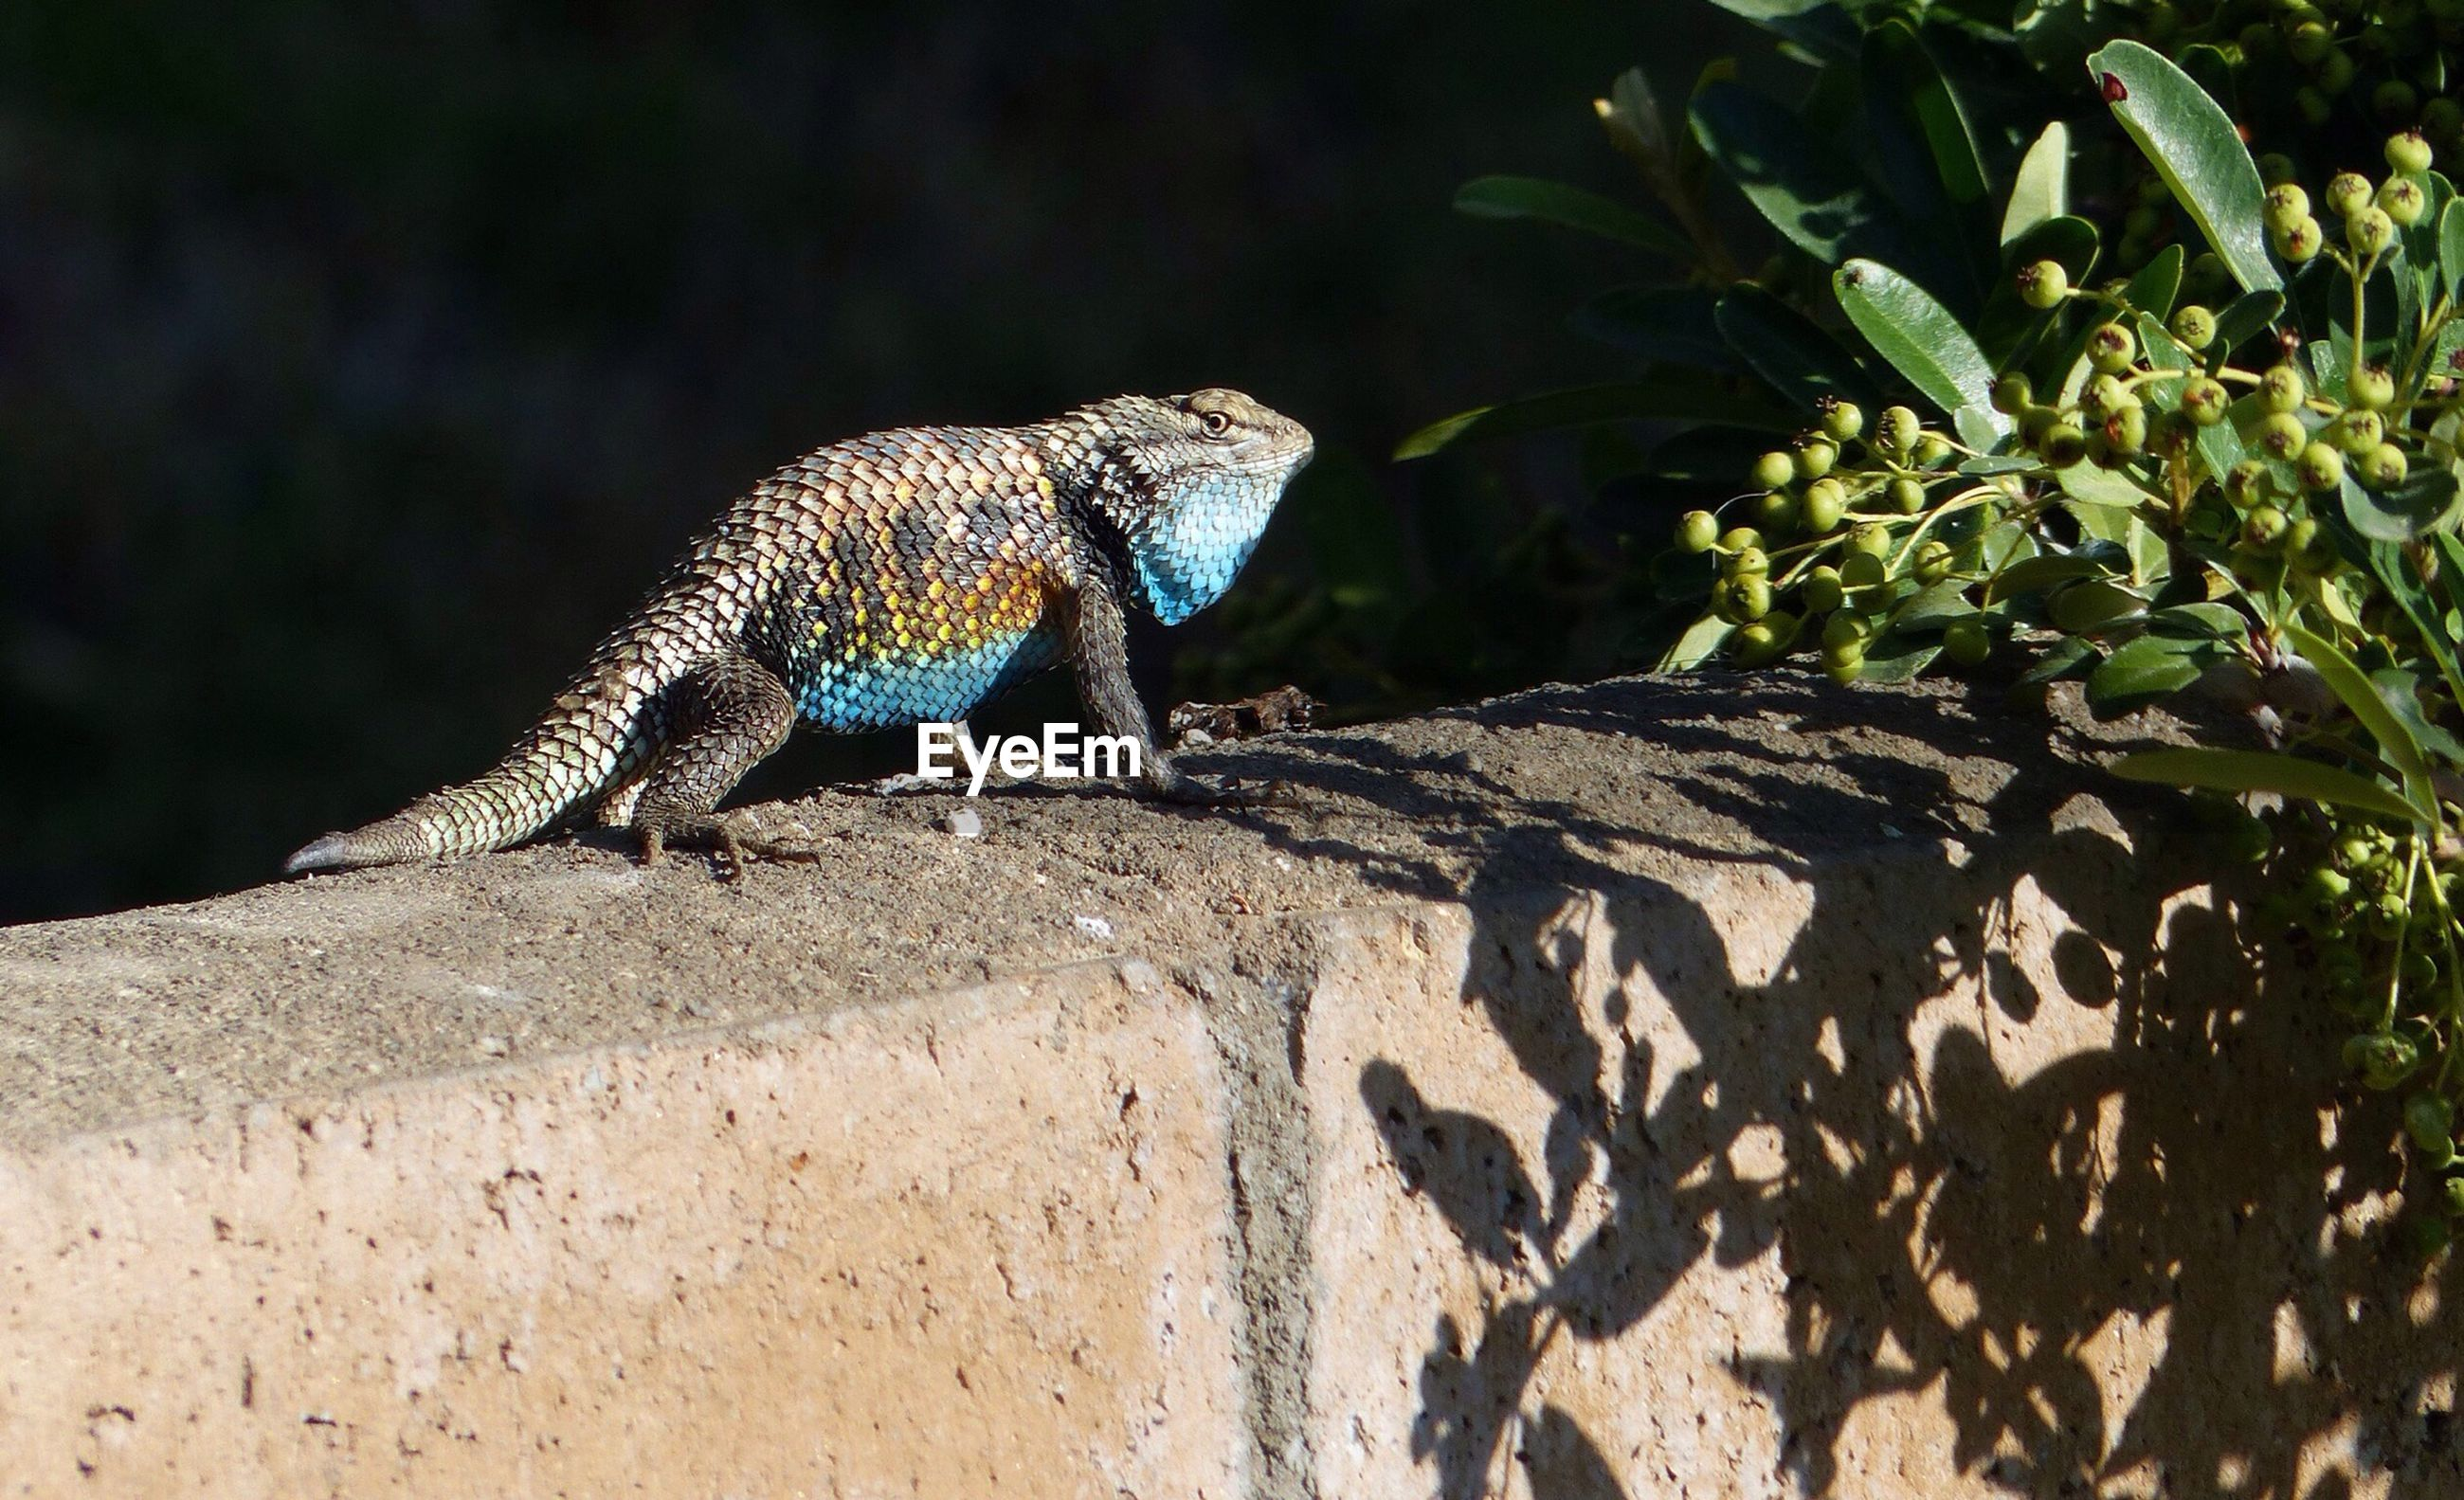 animal themes, one animal, animals in the wild, wildlife, nature, reptile, lizard, side view, blue, full length, sunlight, outdoors, day, tree, close-up, no people, zoology, focus on foreground, natural pattern, beauty in nature